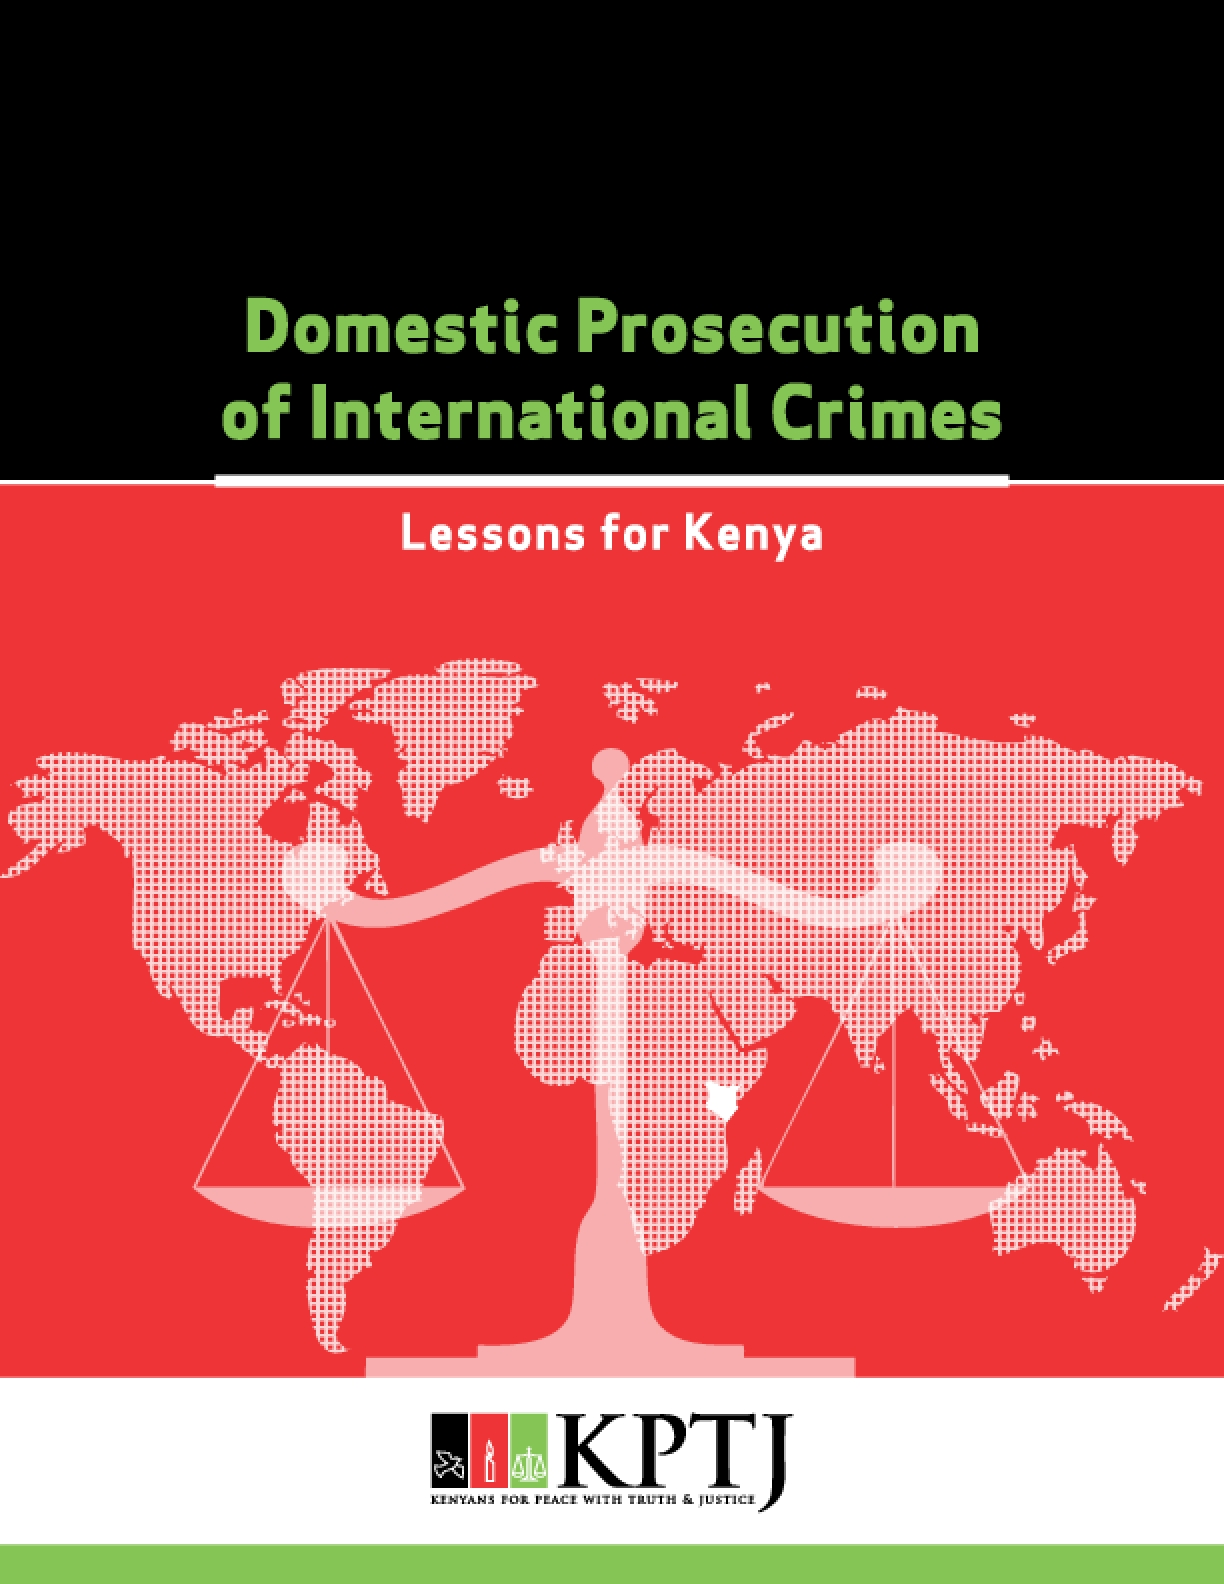 Domestic Prosecutions of International Crimes in Africa